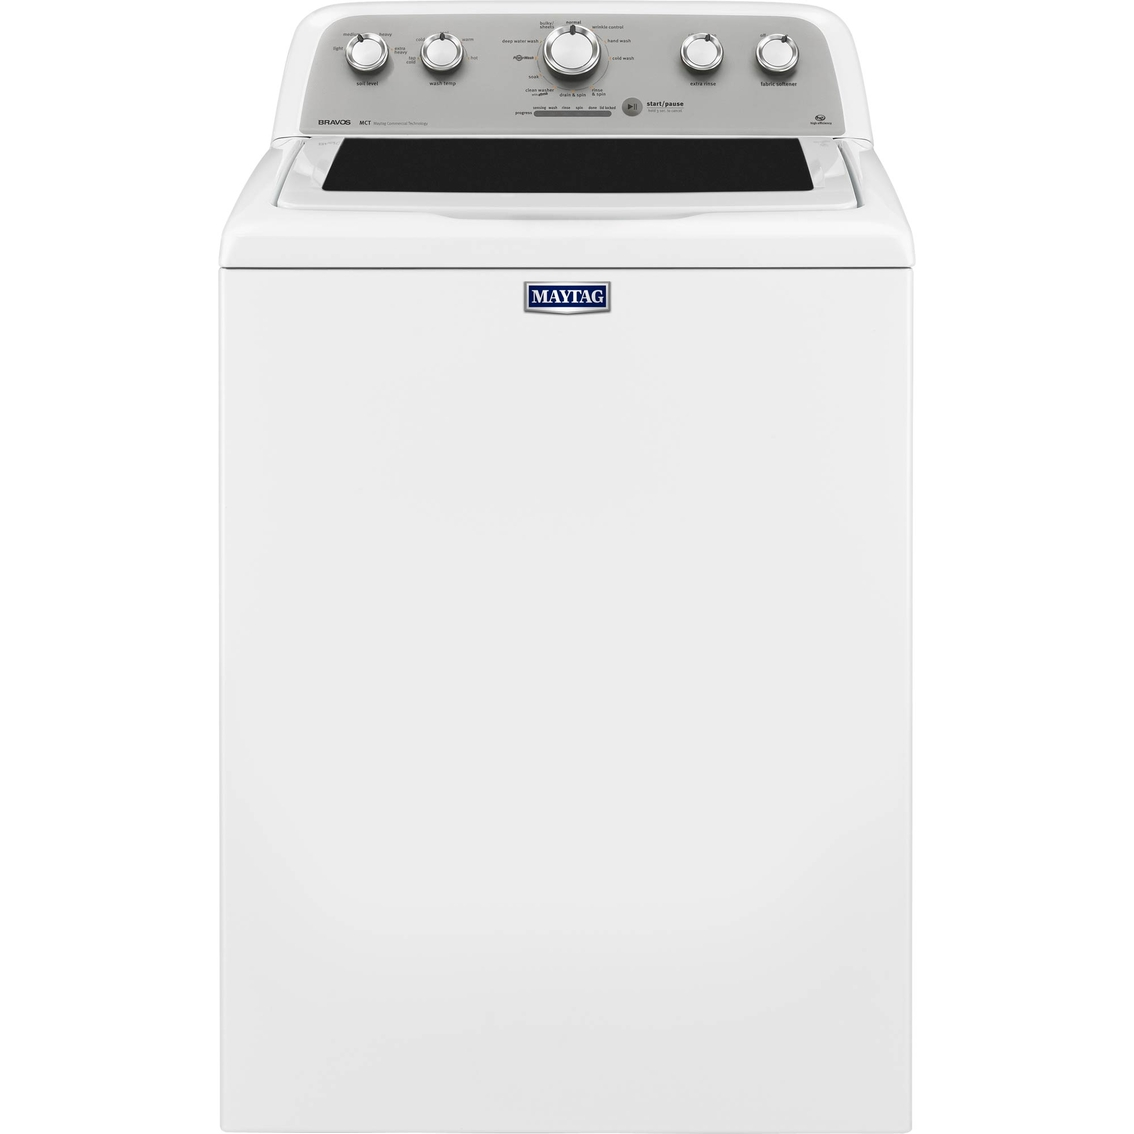 maytag bravos 4 3 cu ft top load washer washers dryers home